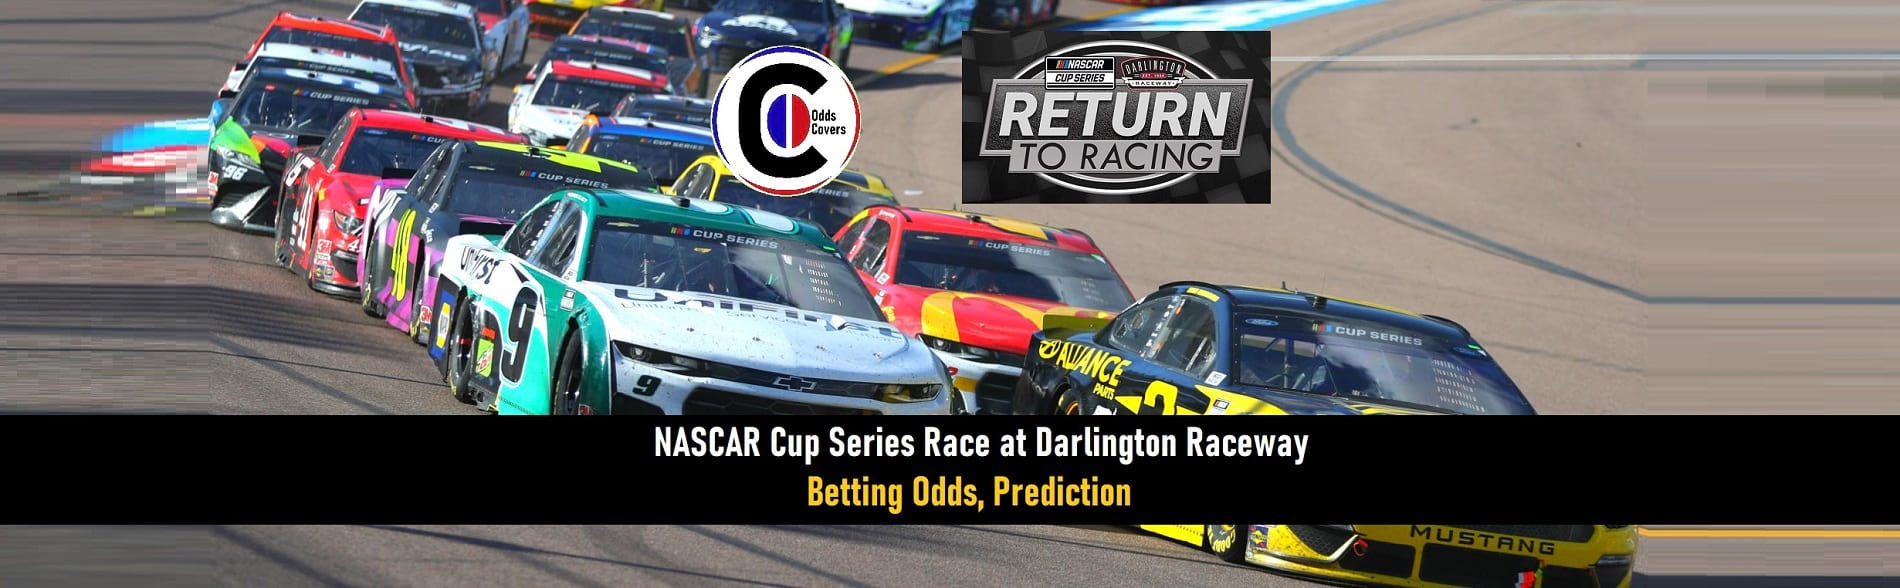 Free nascar betting odds financial spread betting and cfd s50